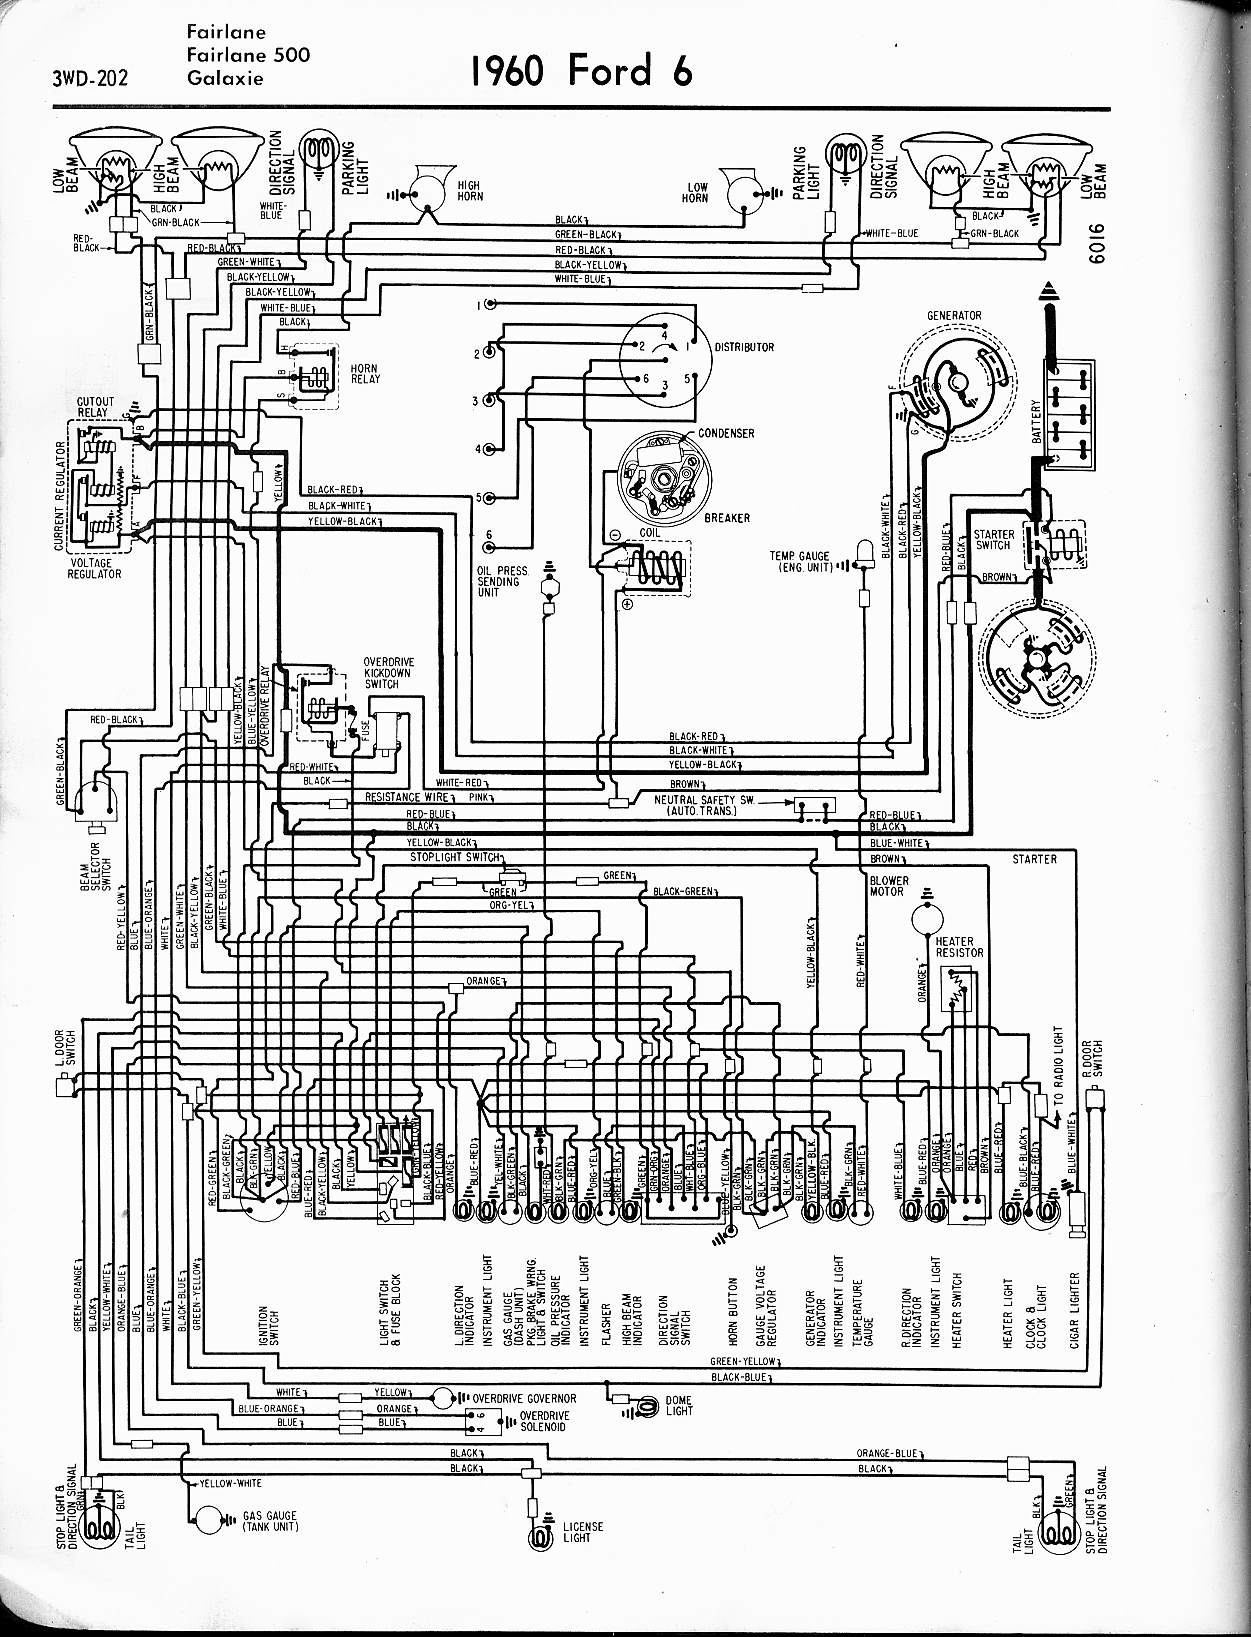 1960 Ford Wiring Diagram Schematics Symbols Schemes F100